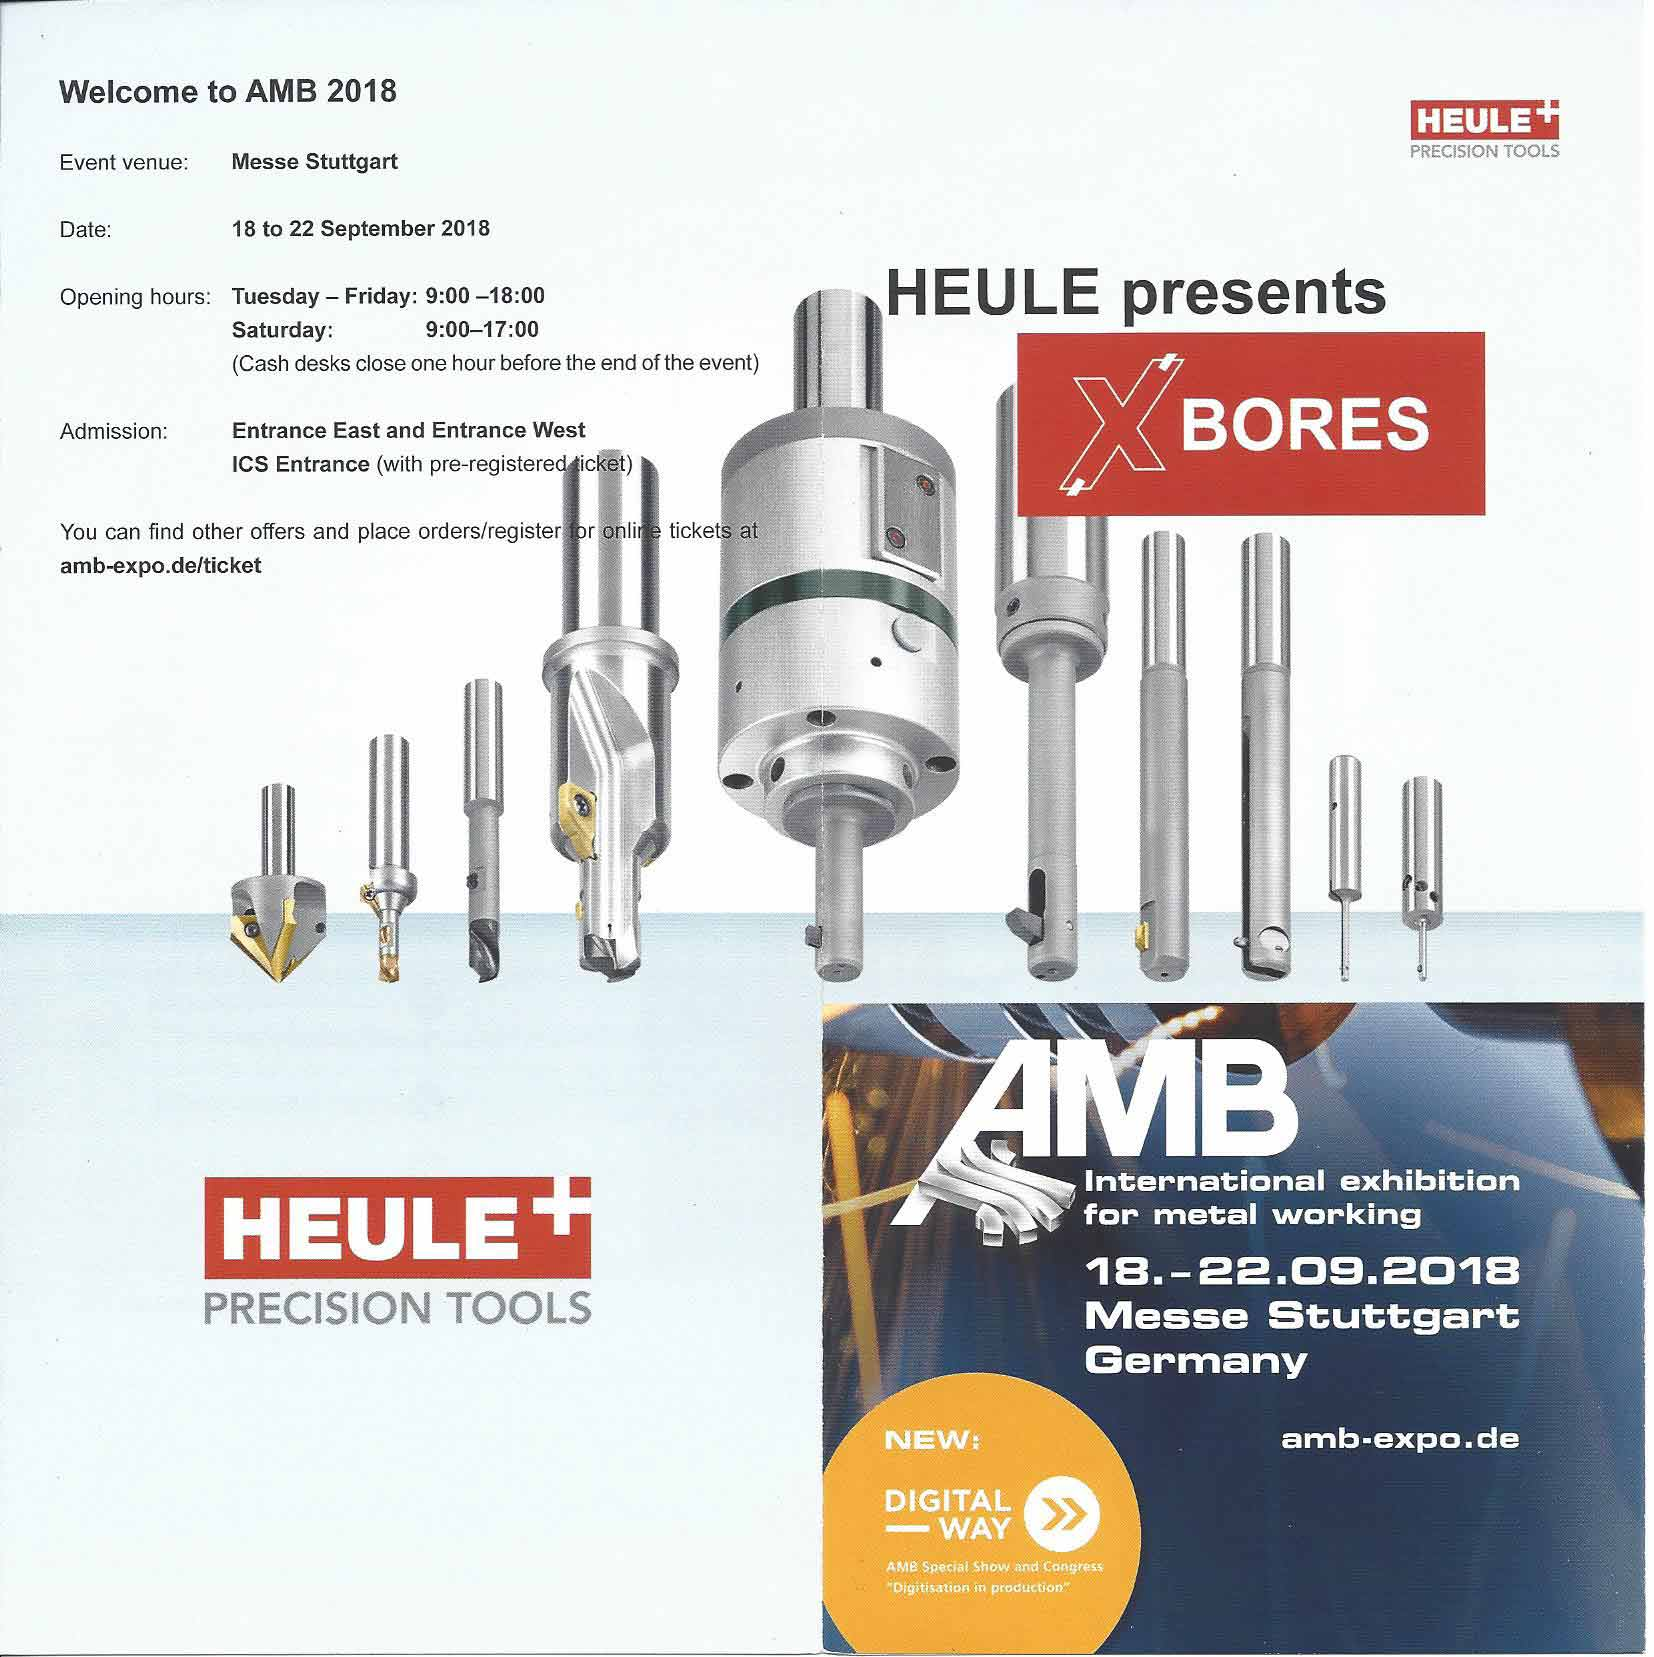 amb-2018-international-exhibition-for-metal-working-stuttgart.jpg